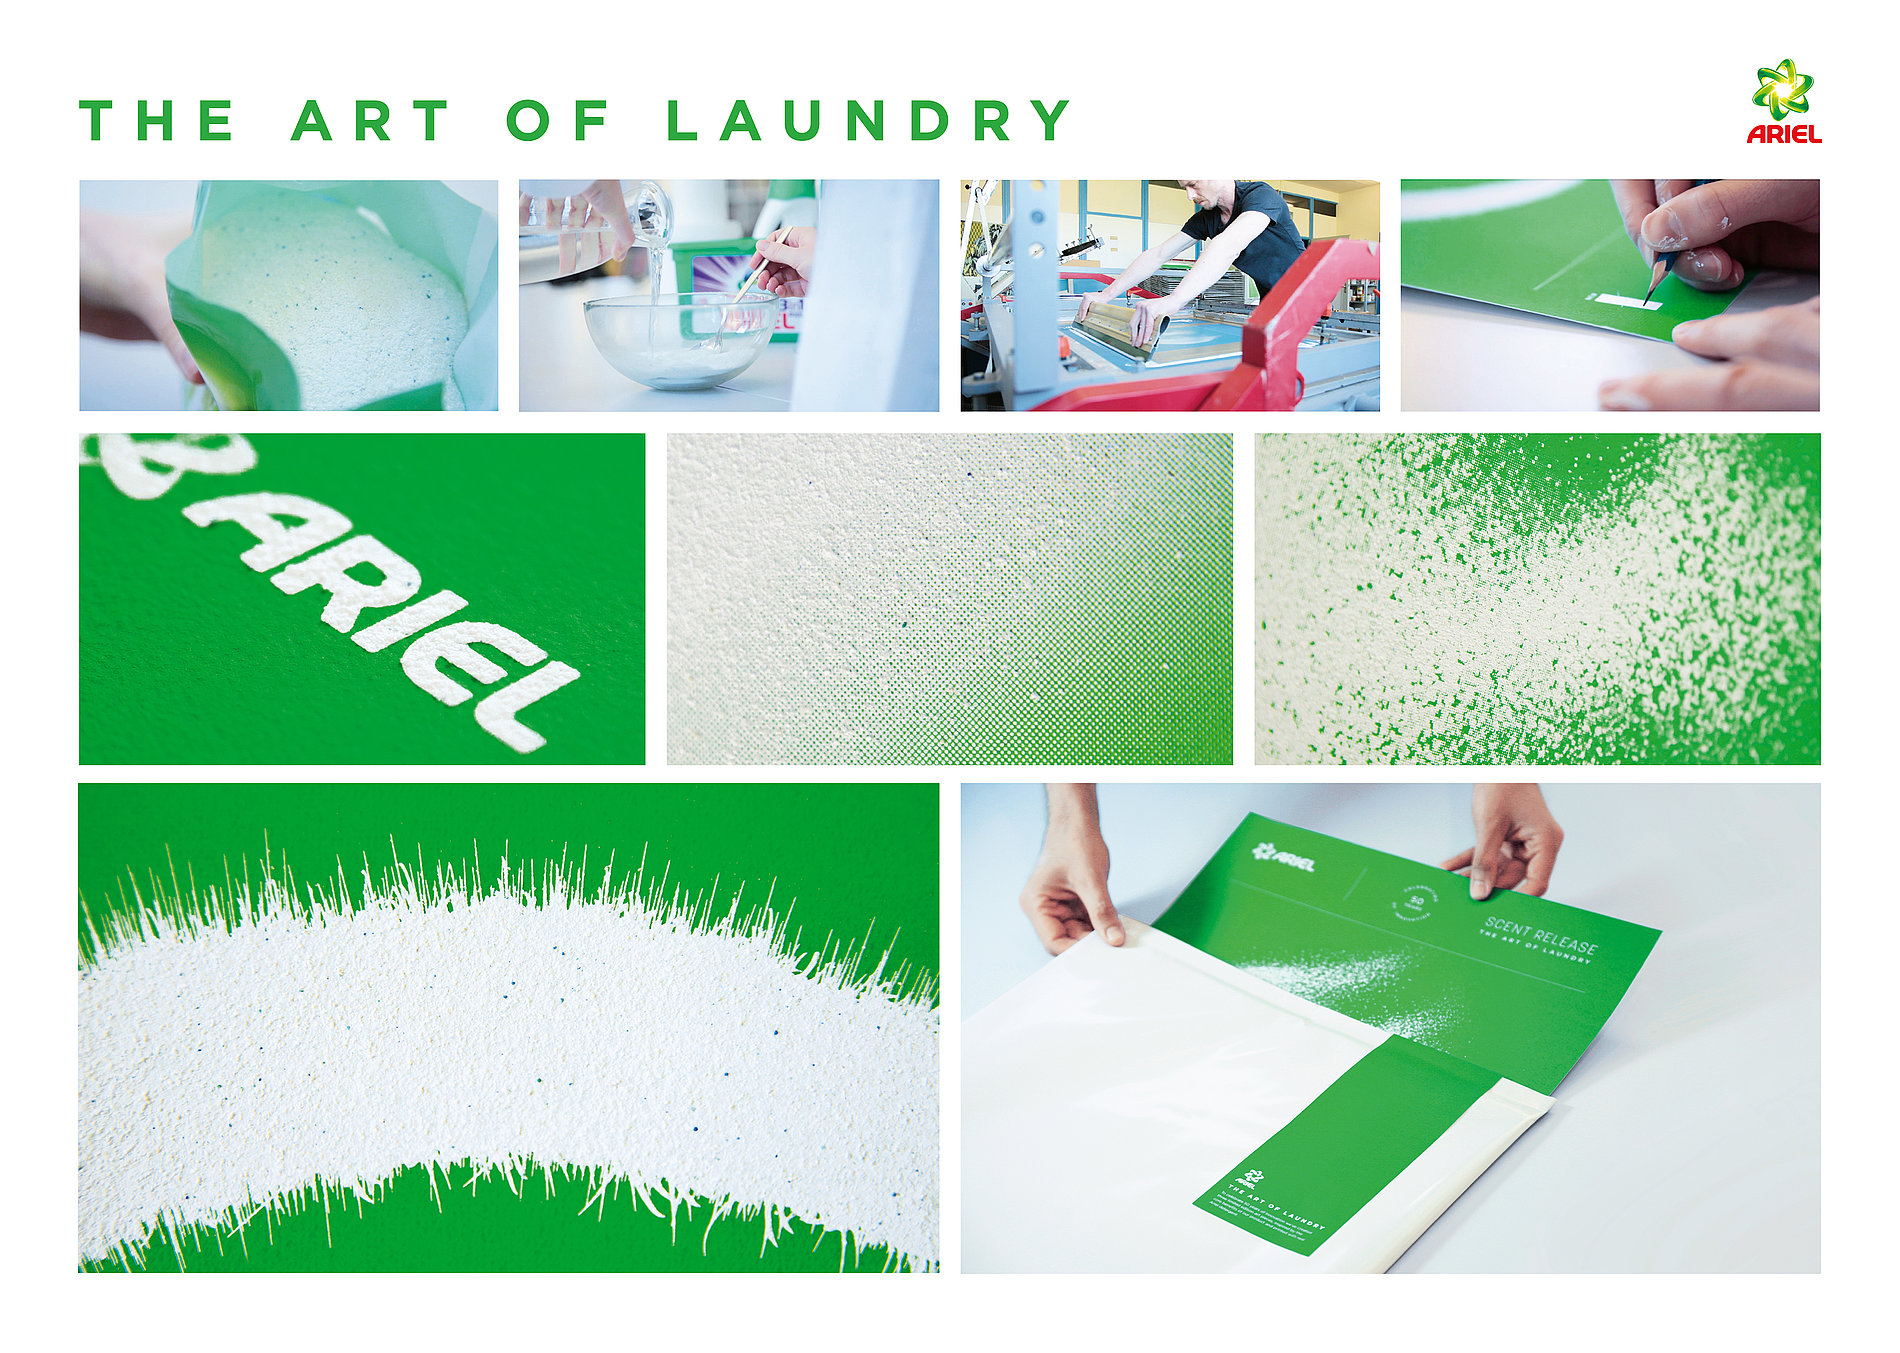 Ariel – The Art of Laundry | Red Dot Design Award